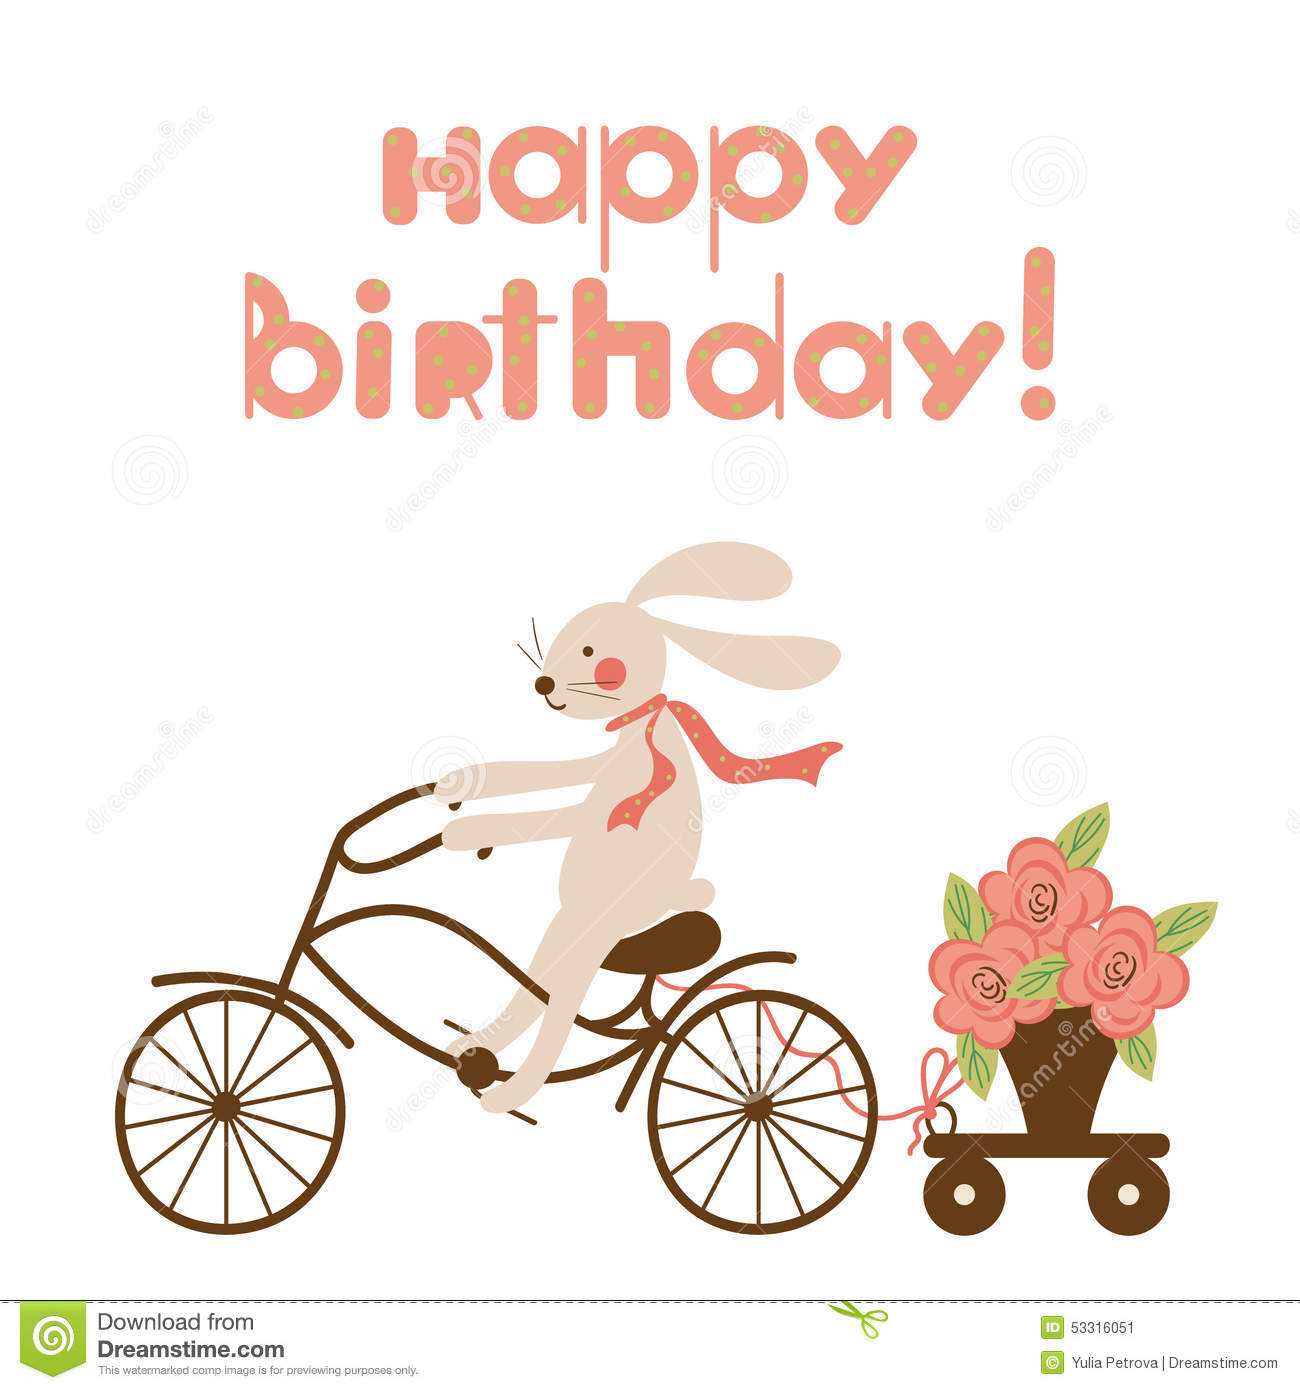 birthday card bicycle rider ; birthday-card-hare-bicycle-flowers-cute-funny-rabbit-pot-trolley-cartoon-happy-design-can-be-used-as-53316051